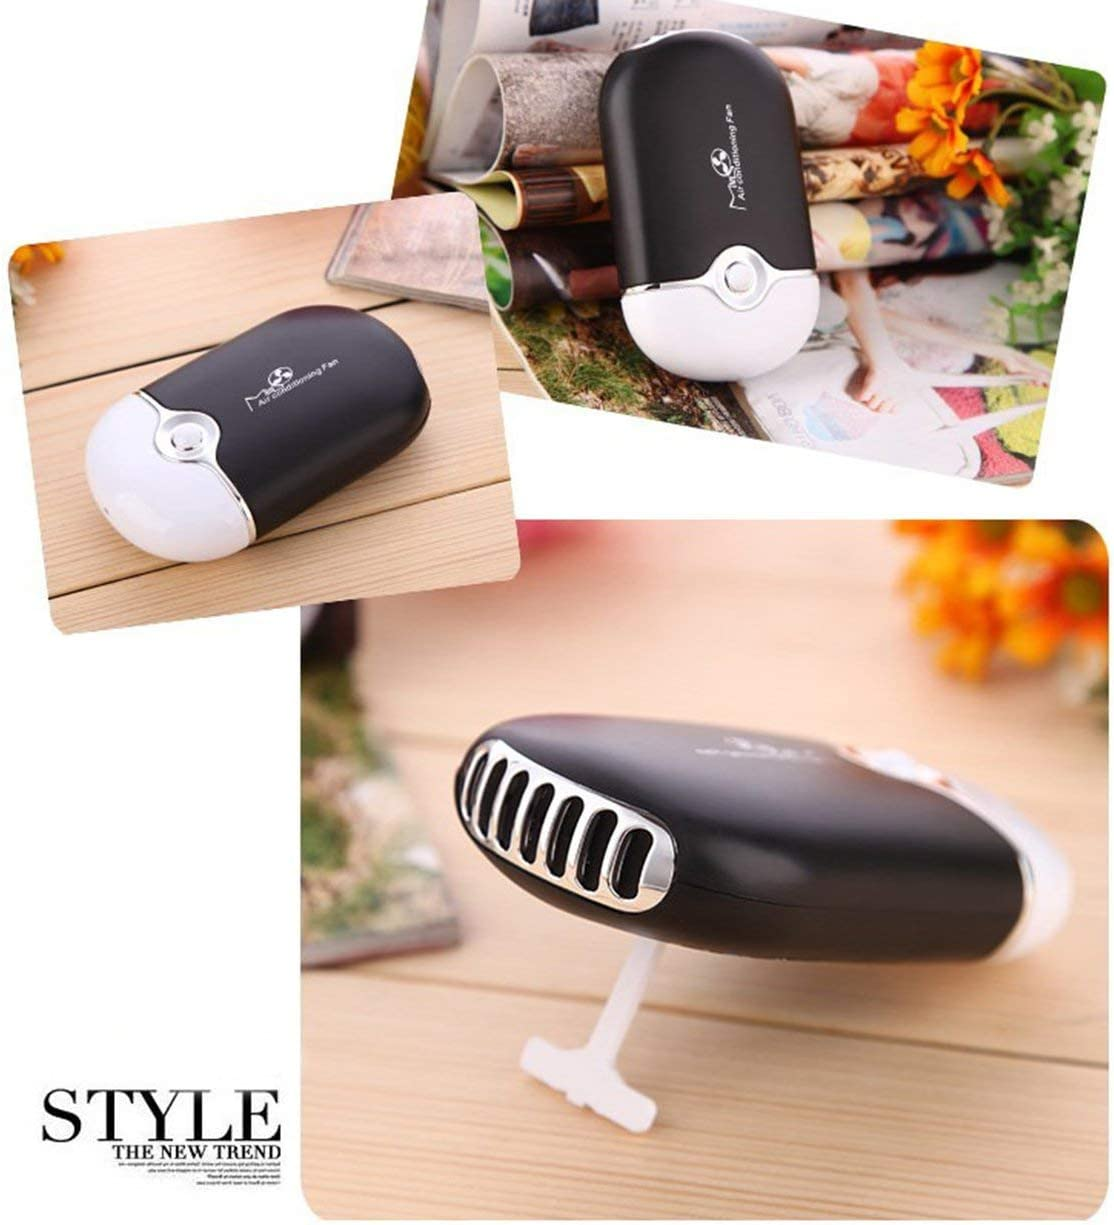 Detectorcatty Portable Mini Fan Quick Dry for Eyelashes Grafting Implanting Fanfree Air Conditioning Cooling Machine